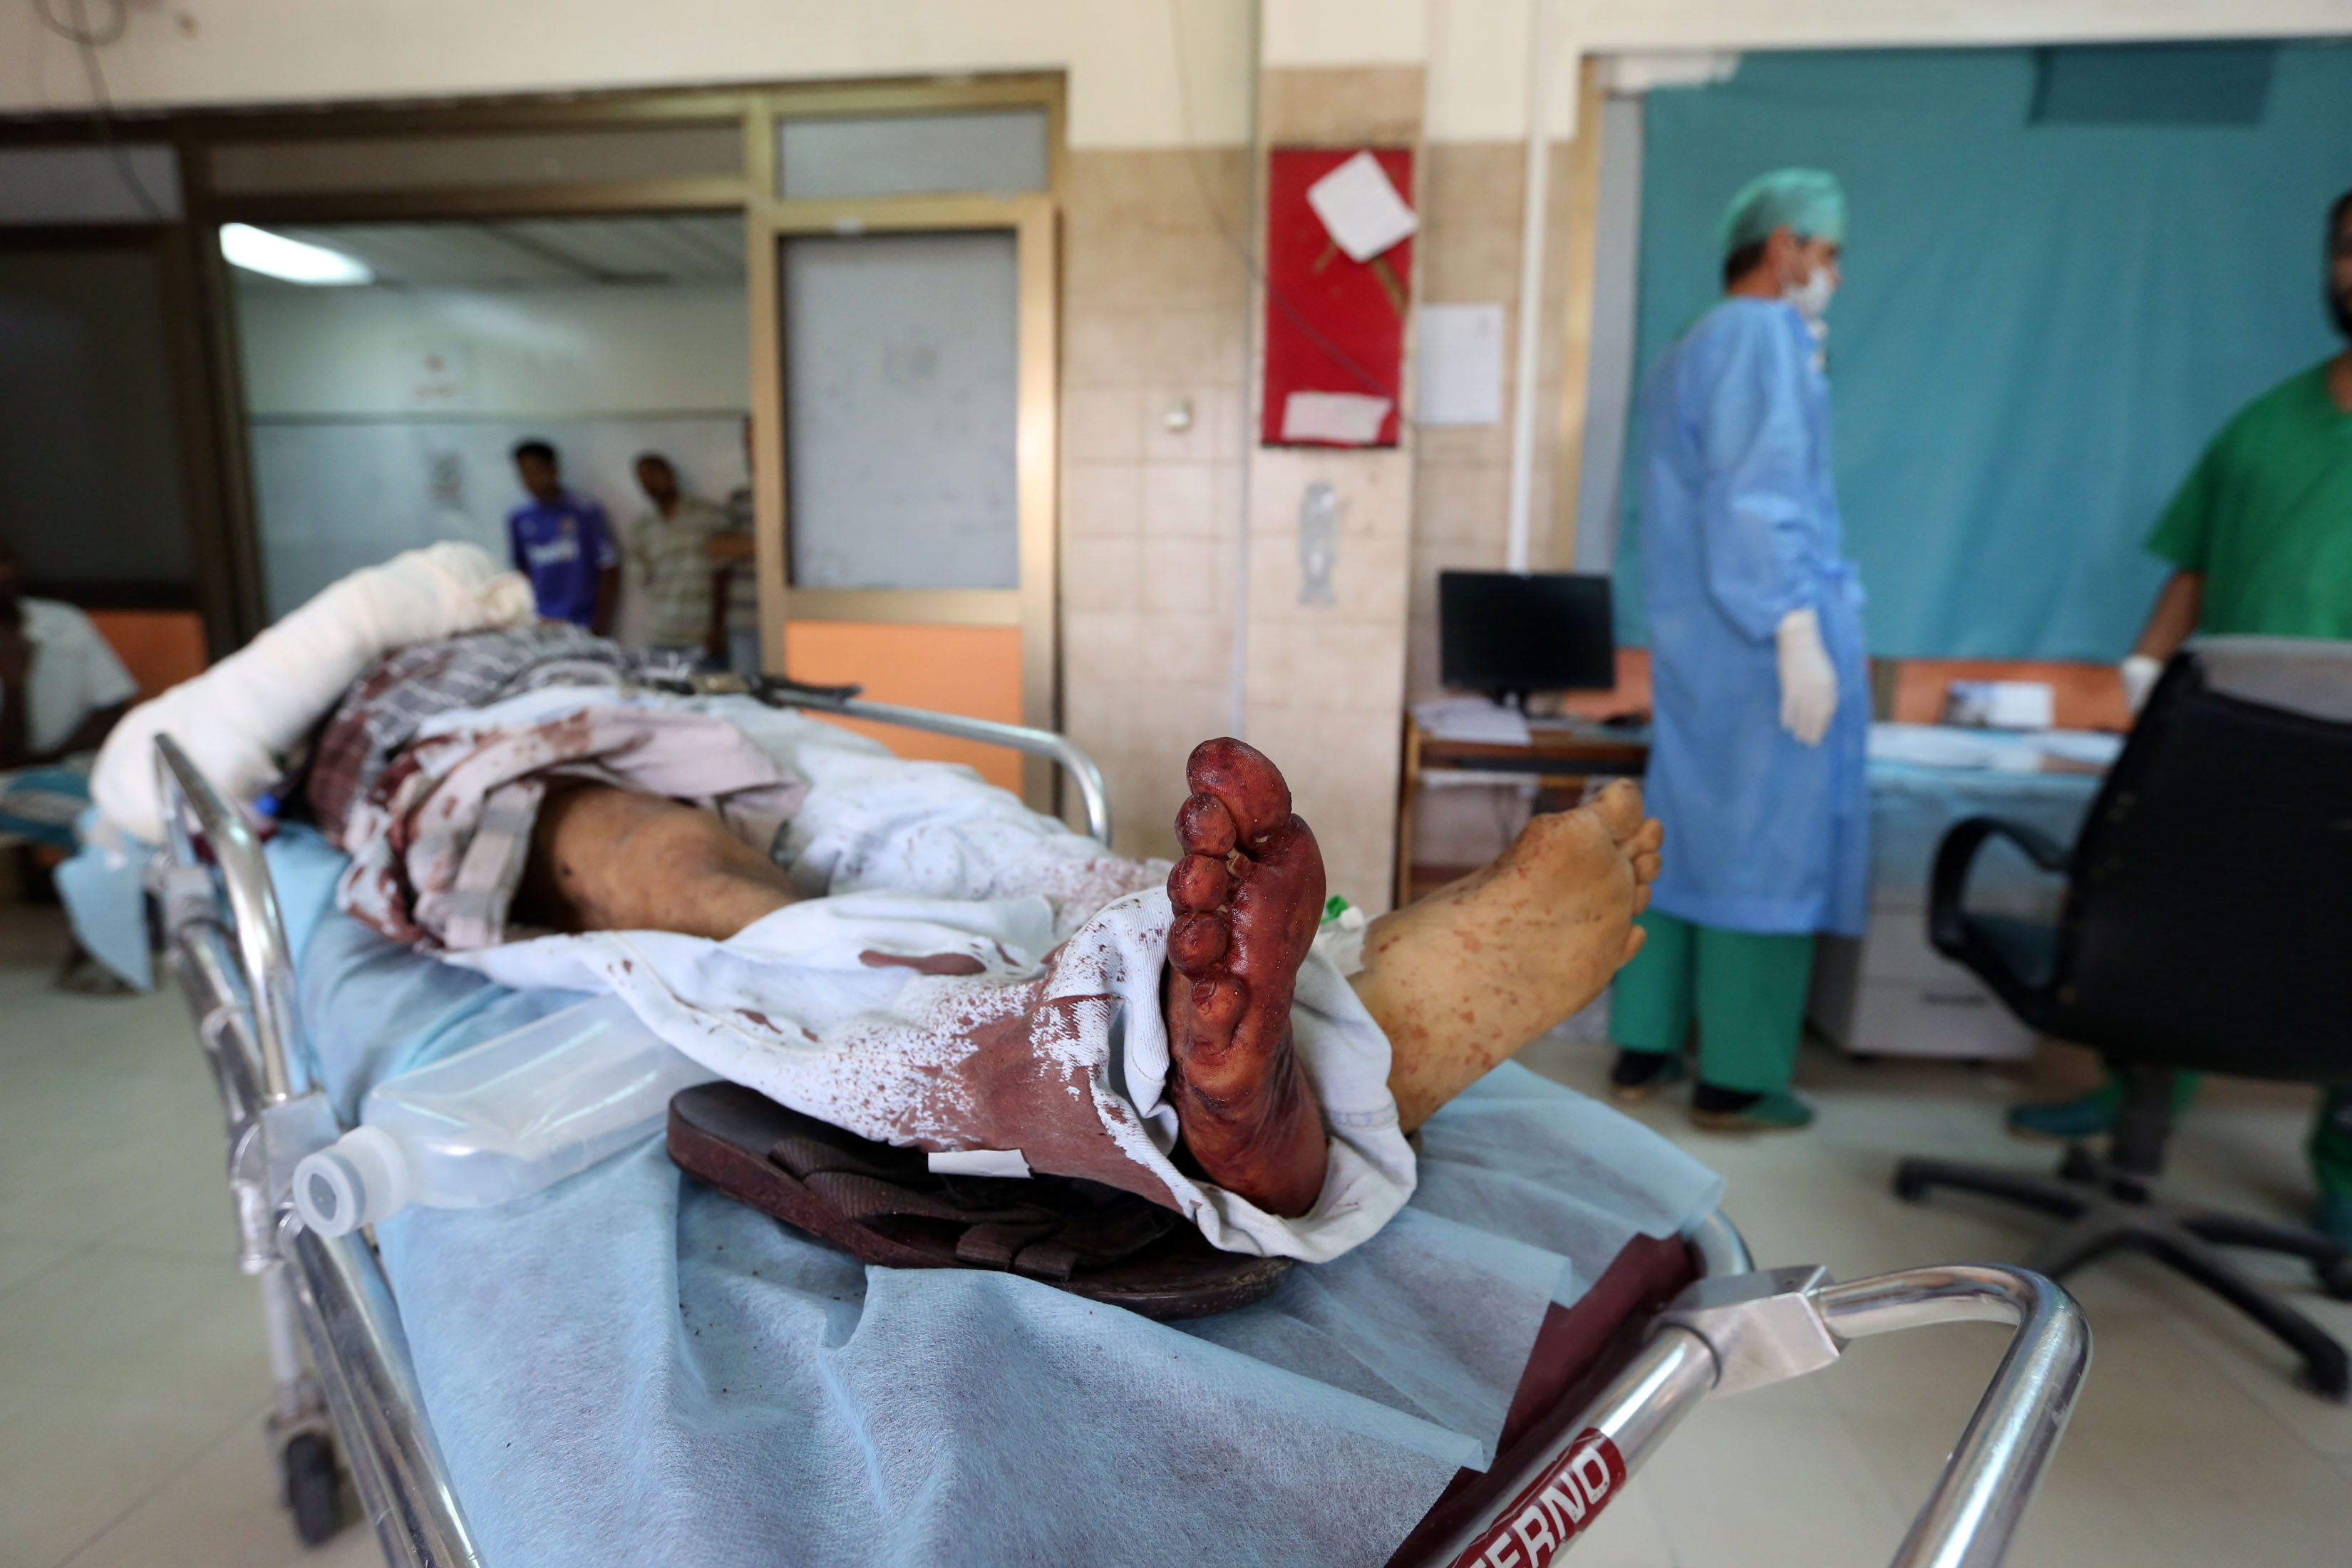 A 54 year old Tunisian citizen, identified as Mohammed bin Amer bin Saleh, receives treatment for serious wounds he sustained when a carbomb blew up in central Tripoli on 4 August. Gunbattles between youth allegedly competing for market place and a car blast sent a shudder through the Libyan capital, residents and security sources said, adding on person was wounded AFP PHOTO / MAHMUD TURKIA